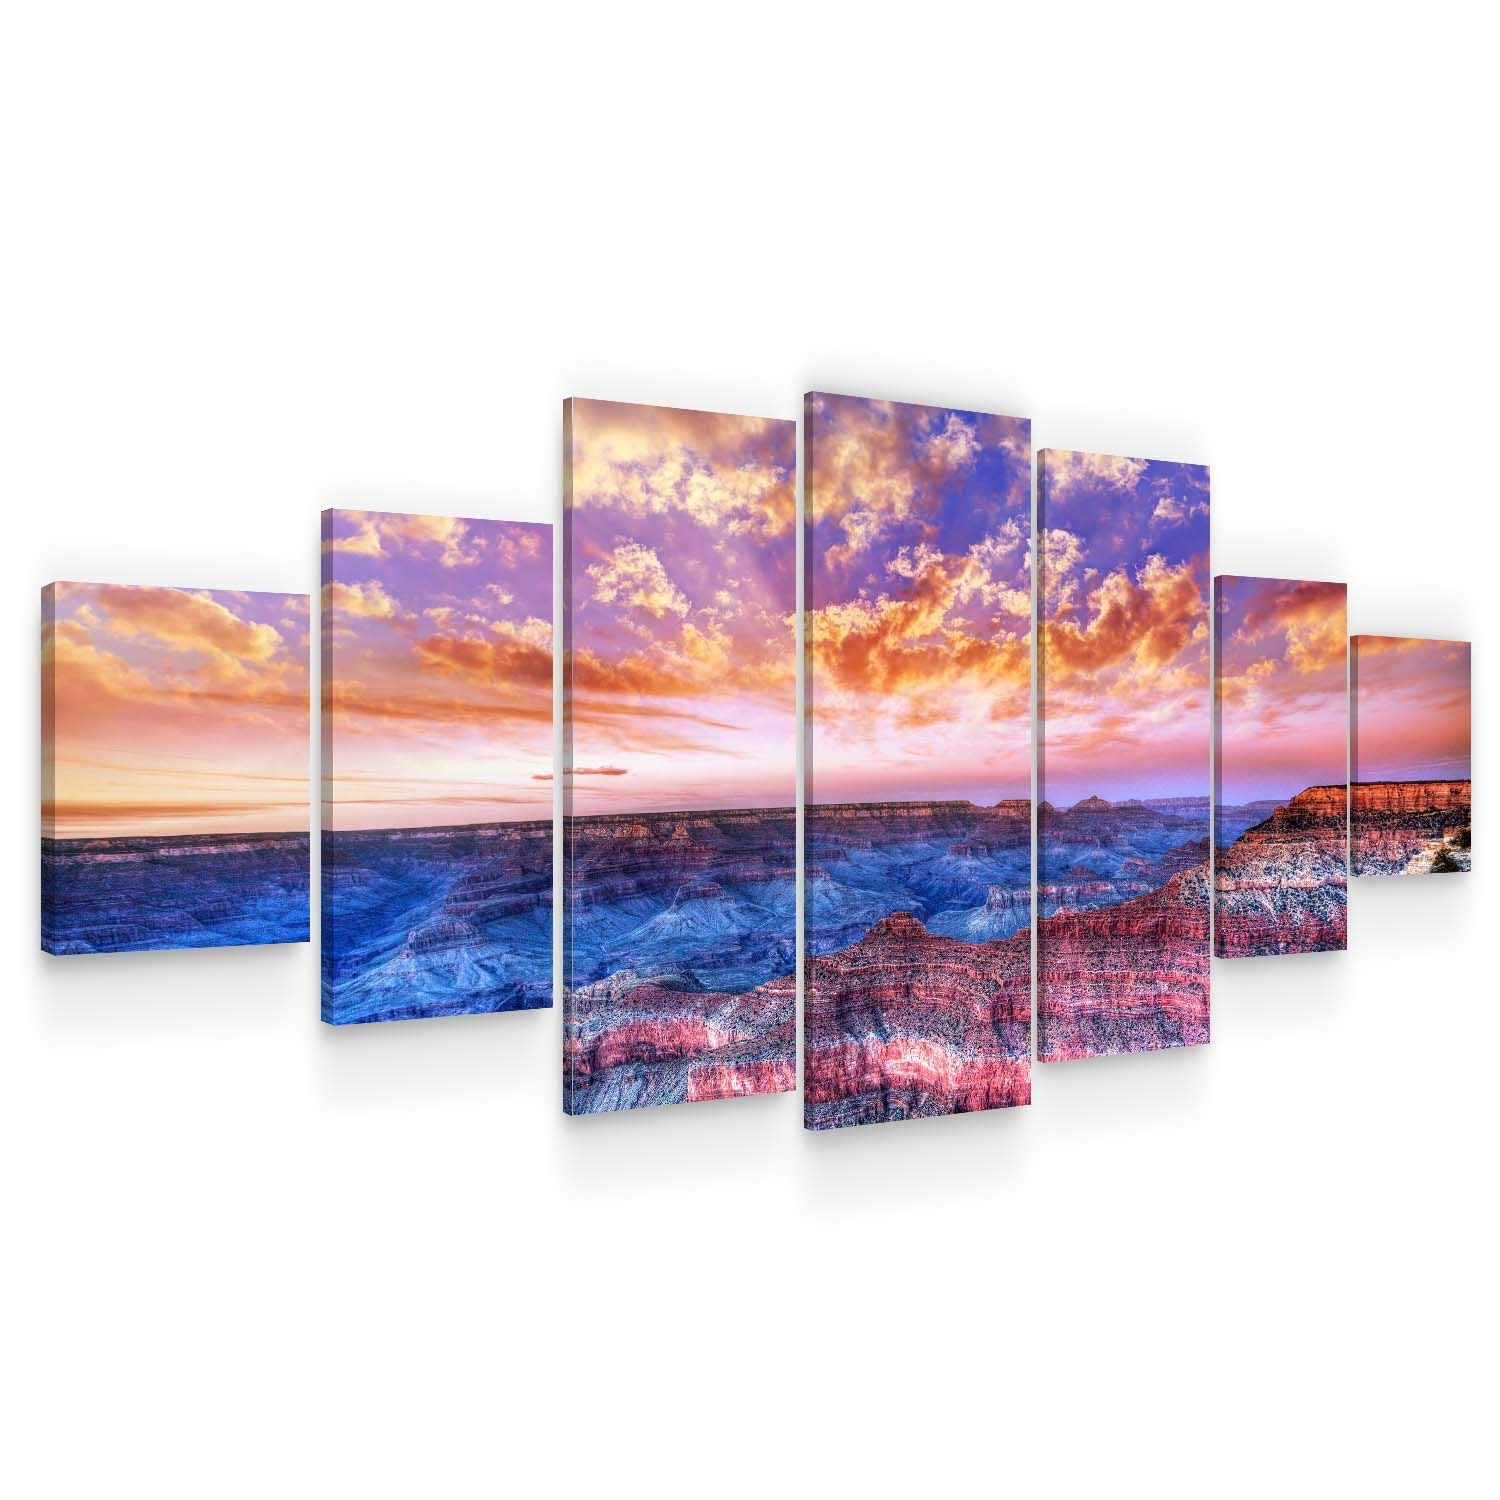 Startonight Huge Canvas Wall Art Grand Canyon View at Sunset - Large Framed Set of 7 40 x 95 Inches